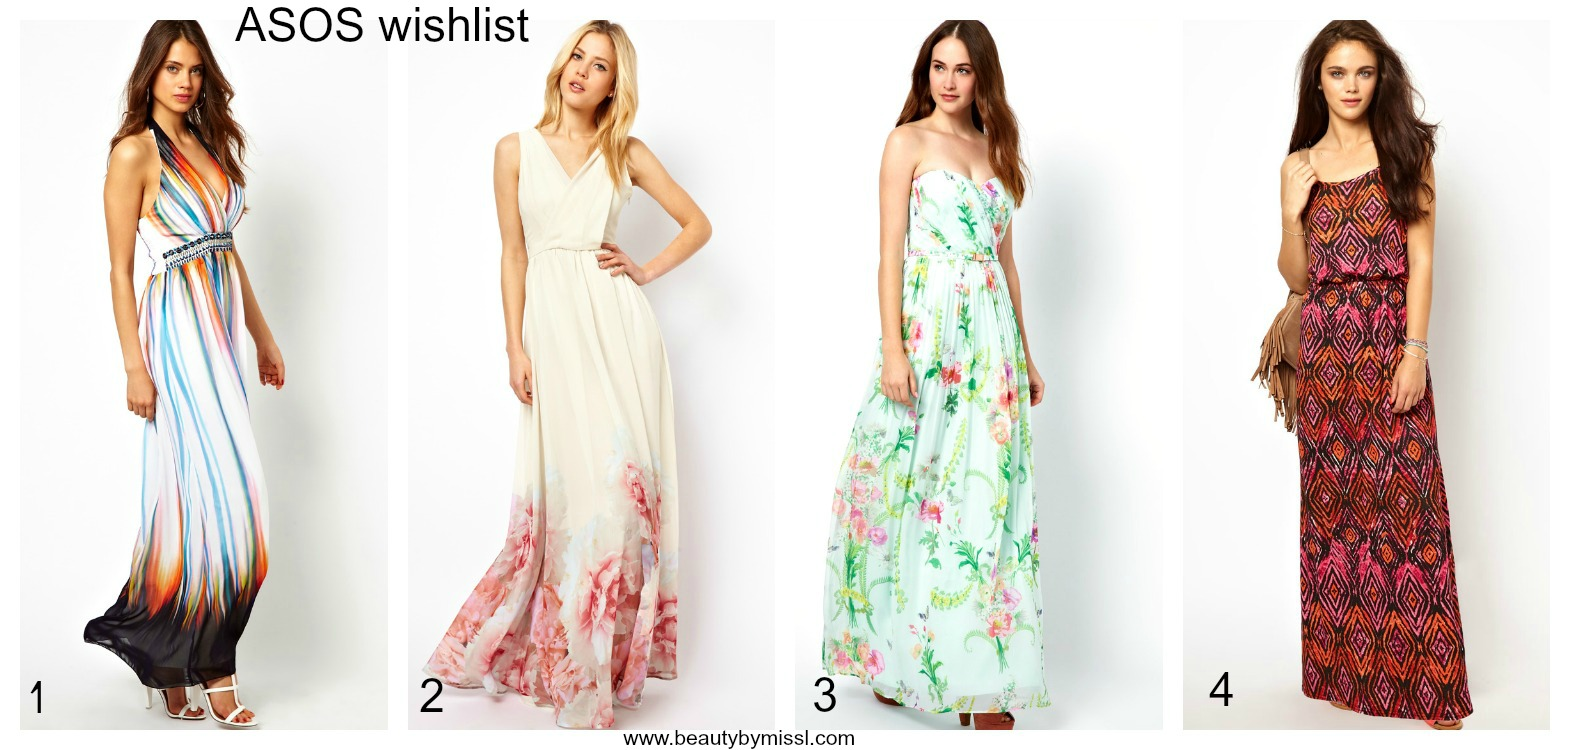 wishlist, wish list, style, fashion